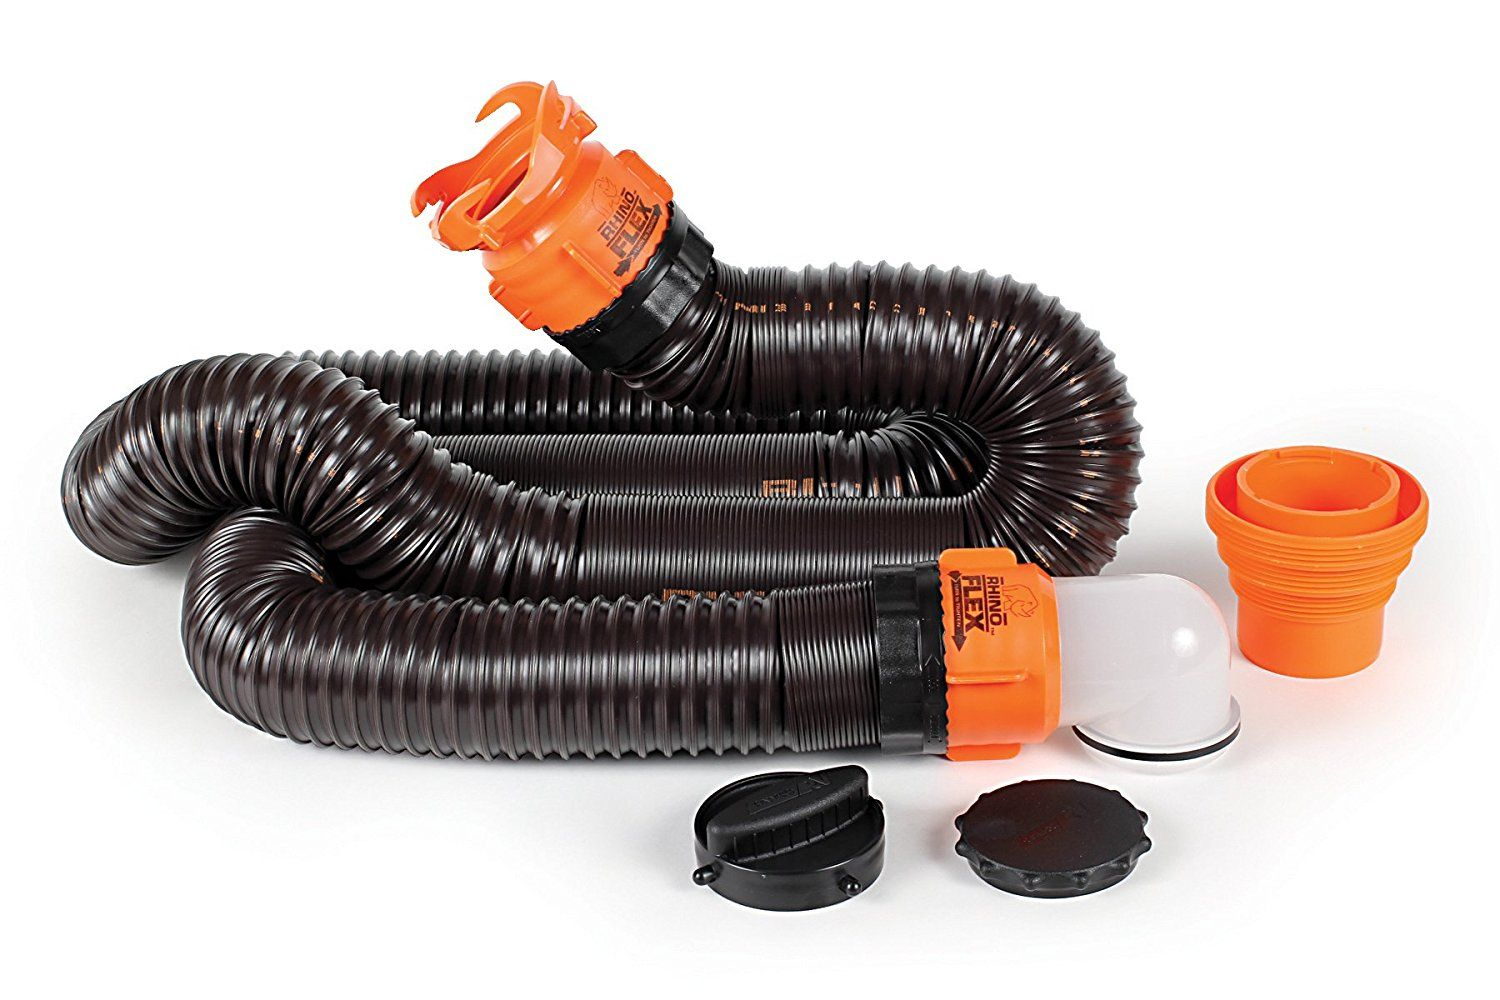 Amazon Com Camco Rhinoflex 15ft Rv Sewer Hose Kit Includes Swivel Fitting And Translucent Elbow With 4 In 1 Dump Station Fitting Storage Ca Camco Hose Sewer